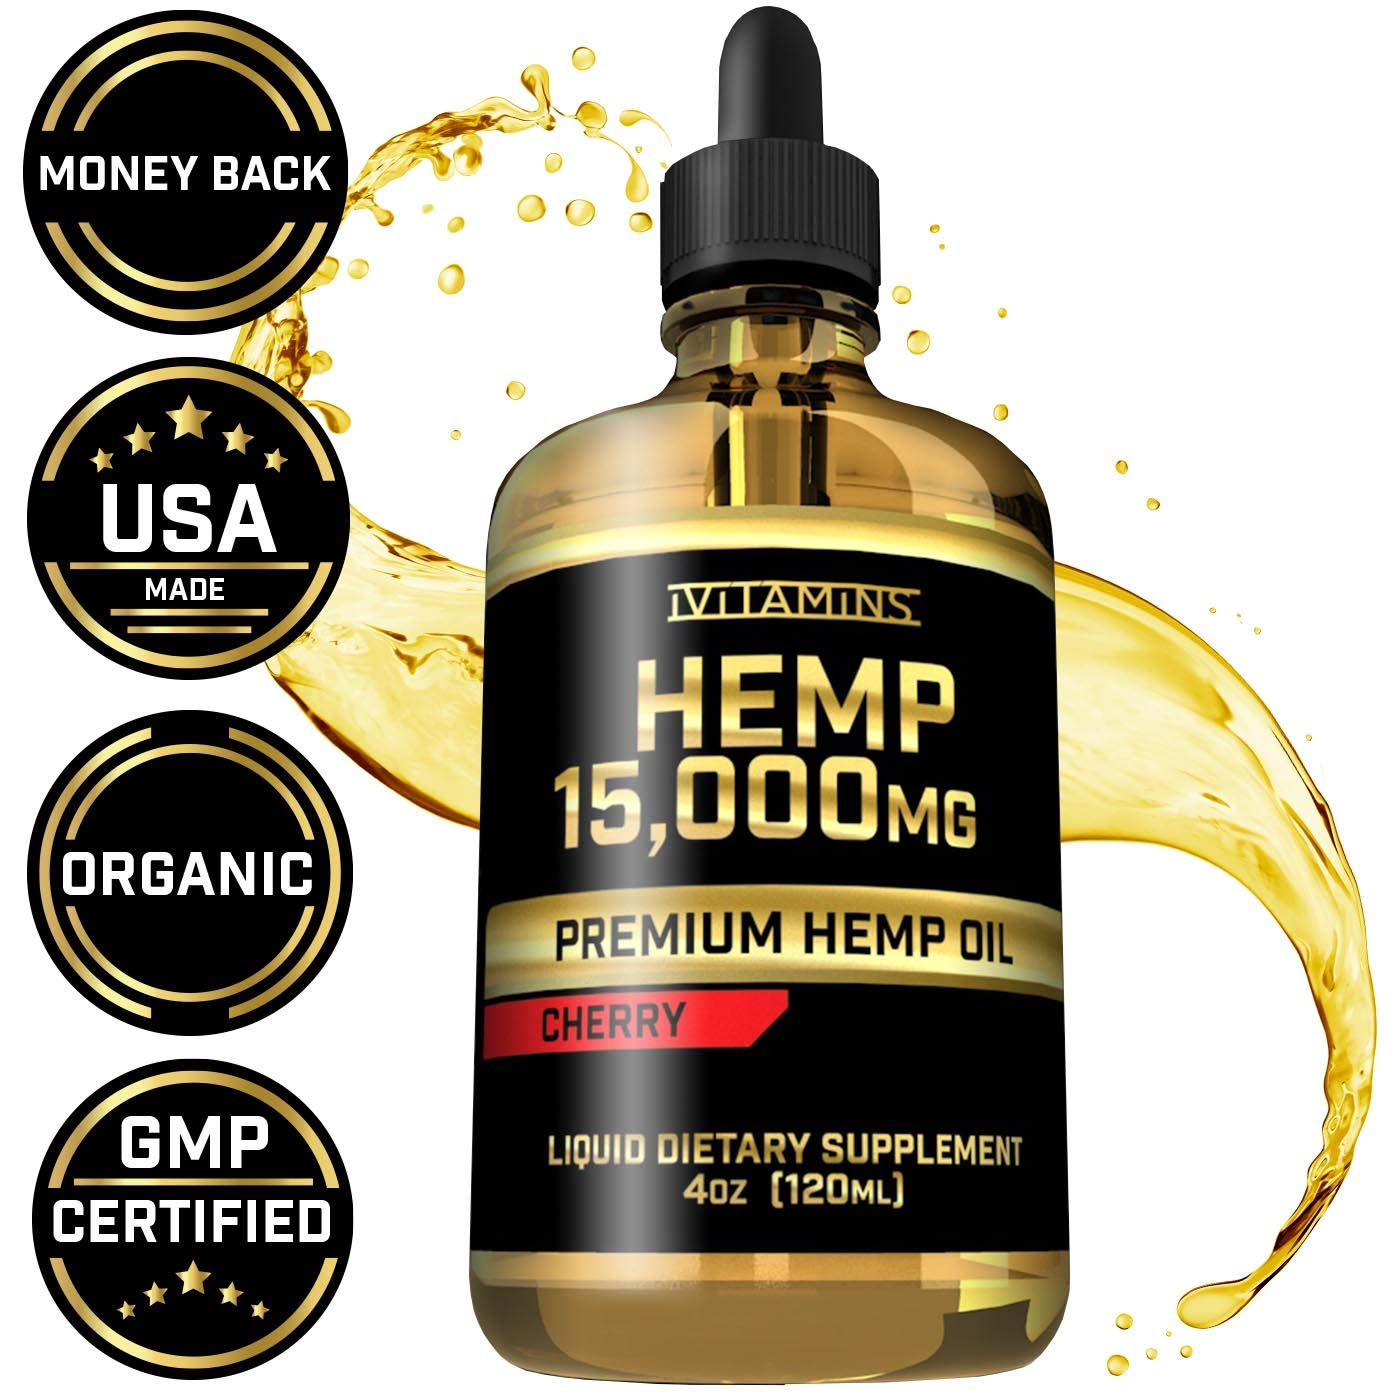 Hemp Oil Drops for Pain & Anxiety - 15,000mg - May Help with Stress, Inflammation, Pain, Sleep, Anxiety, Depression, Nausea + More - Zero THC CBD Cannabidoil - Rich in Omega 3,6,9 (Cherry)